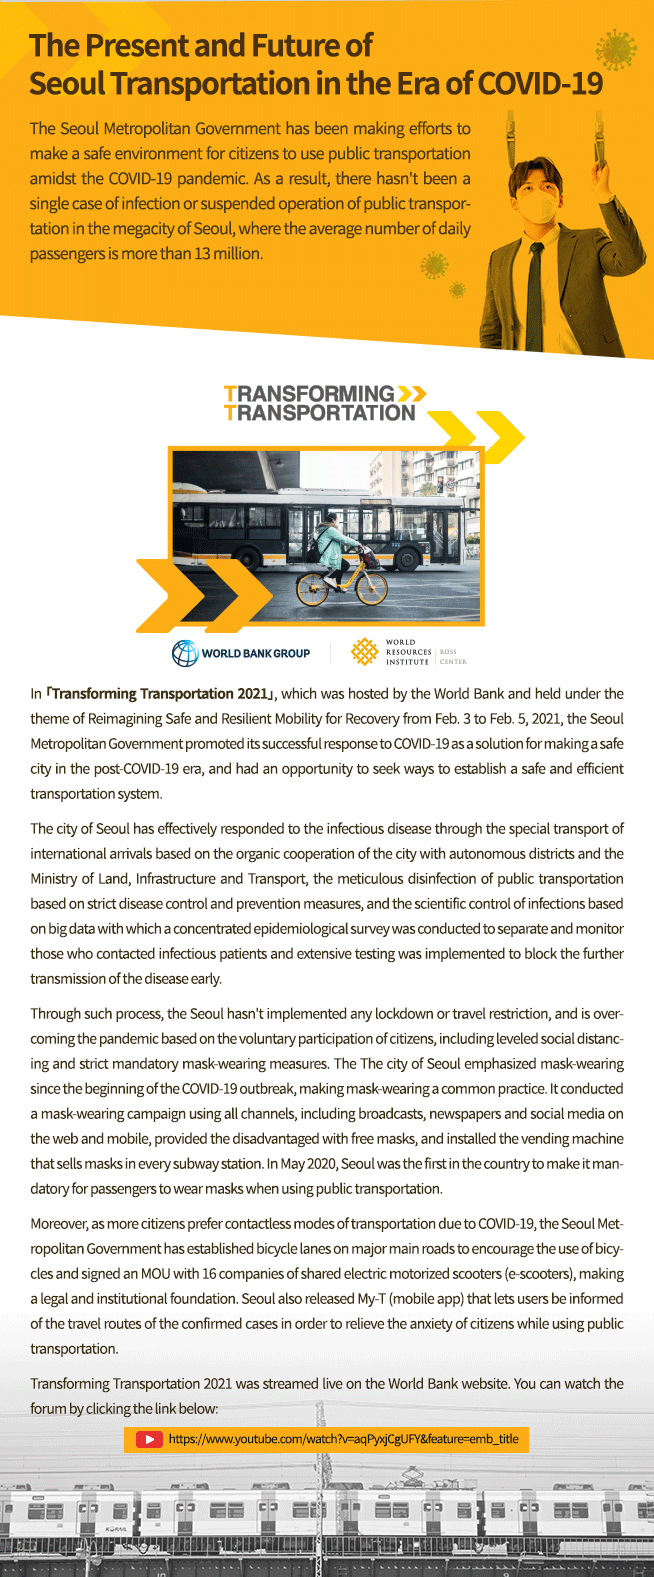 Promotion of the Present and Future of Seoul Transportation in the Era of COVID-19 on the Global Stage